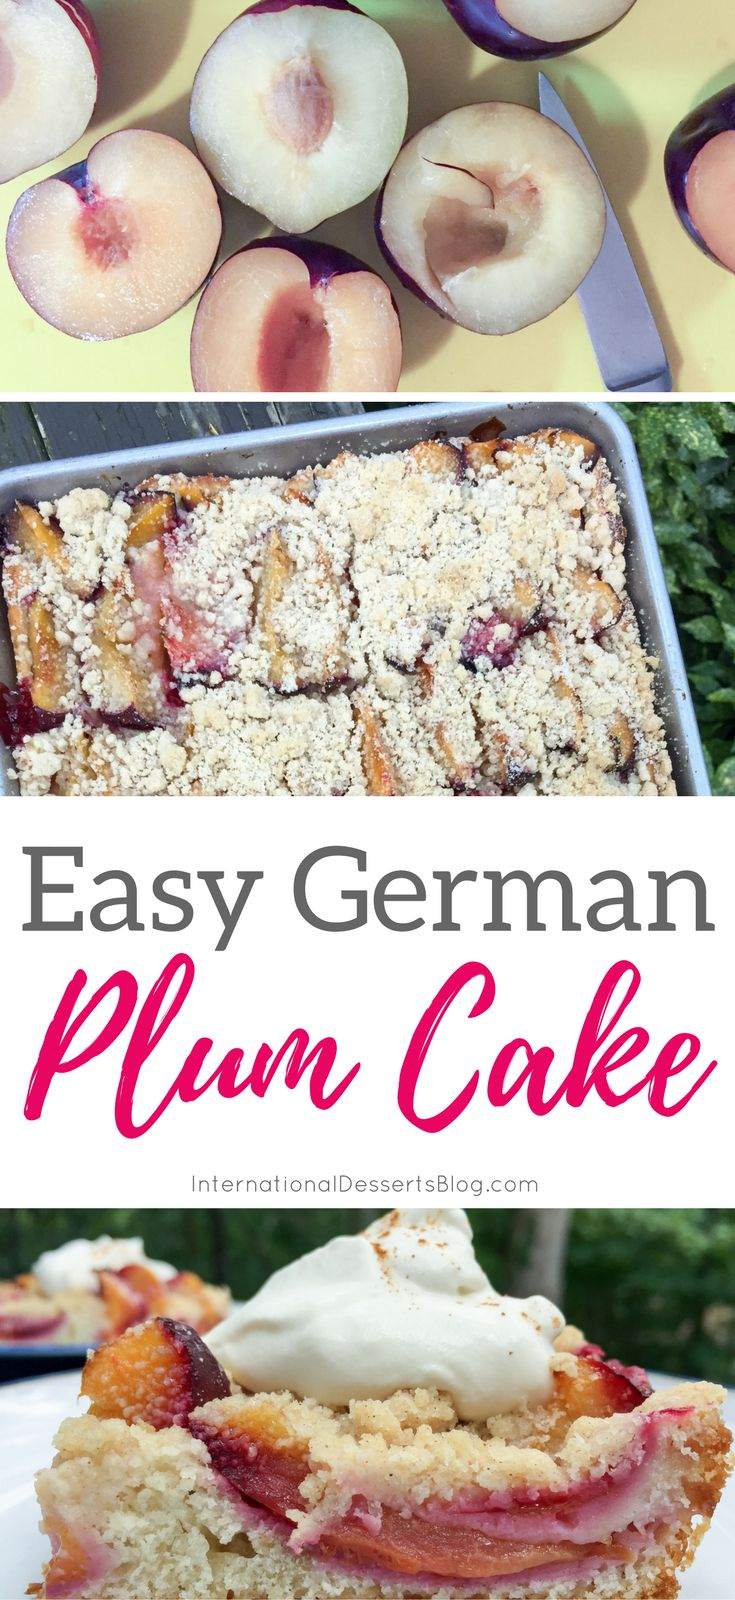 So good and so easy! You've GOT to try this German plum cake! #cakerecipes #fruitrecipes #dessert #baking #easyrecipe